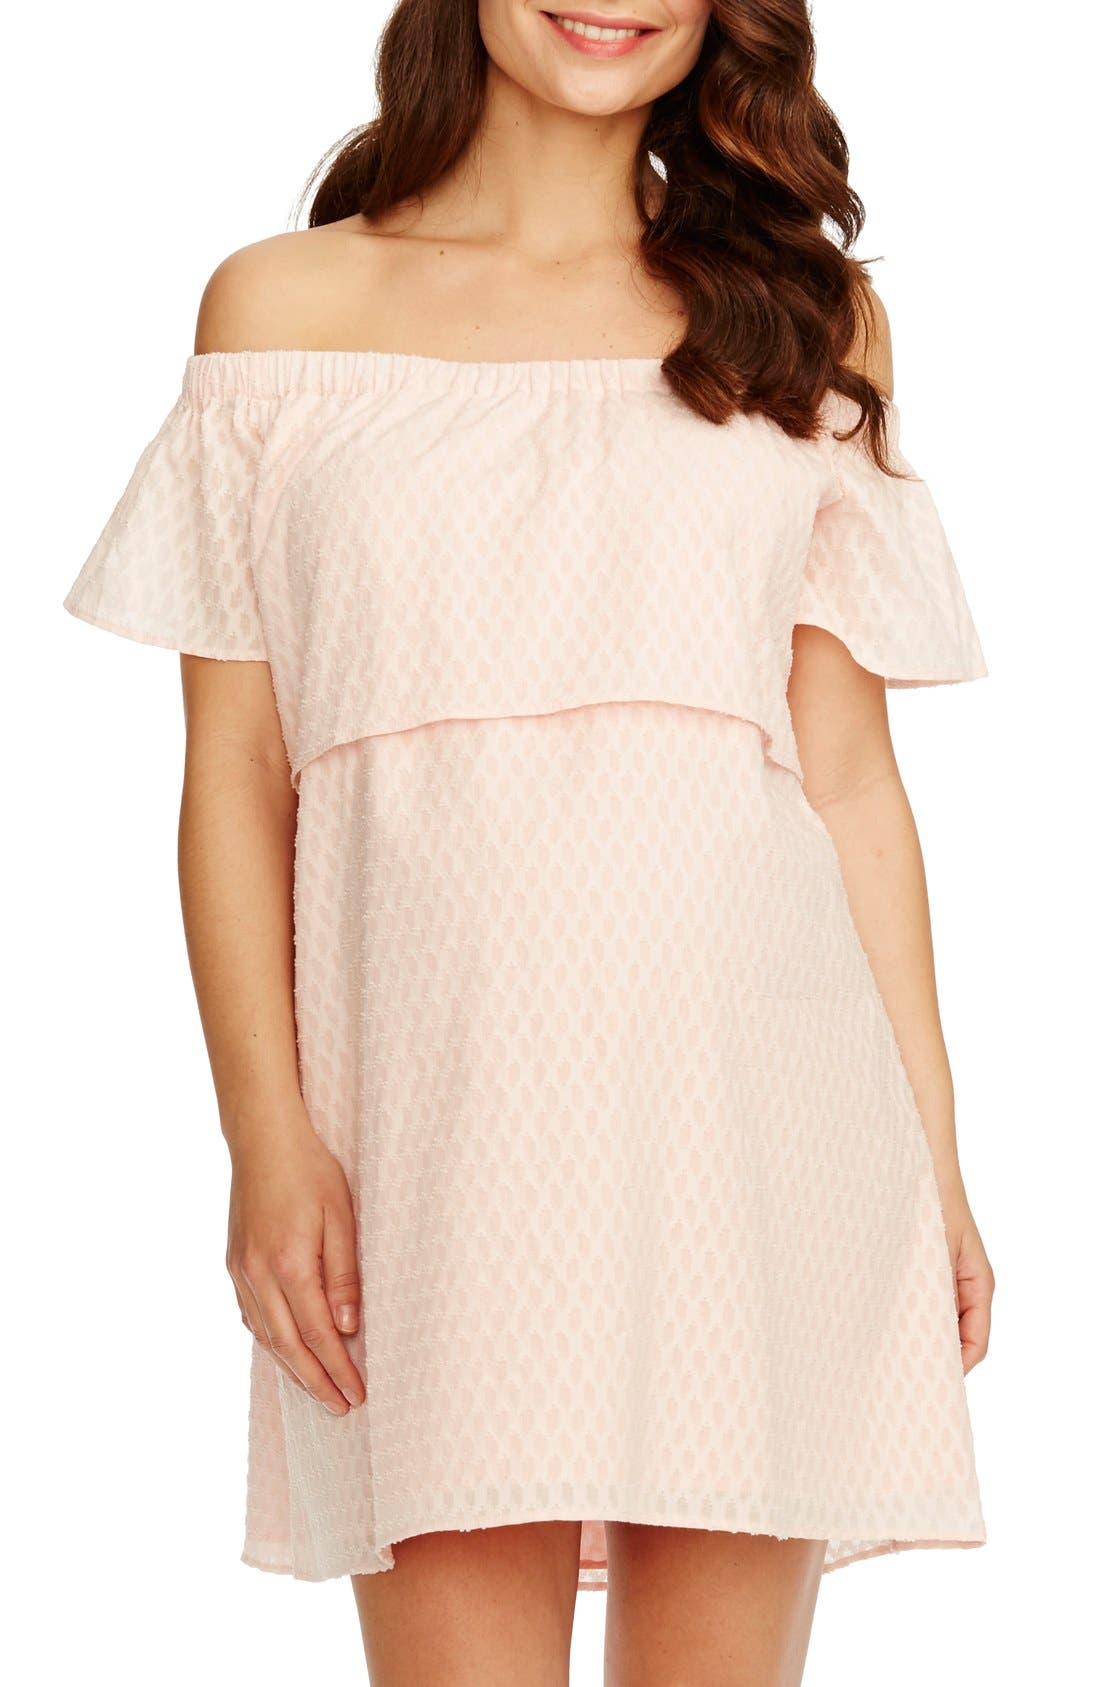 Rosie Pope 'Camille' Off the Shoulder Maternity Dress